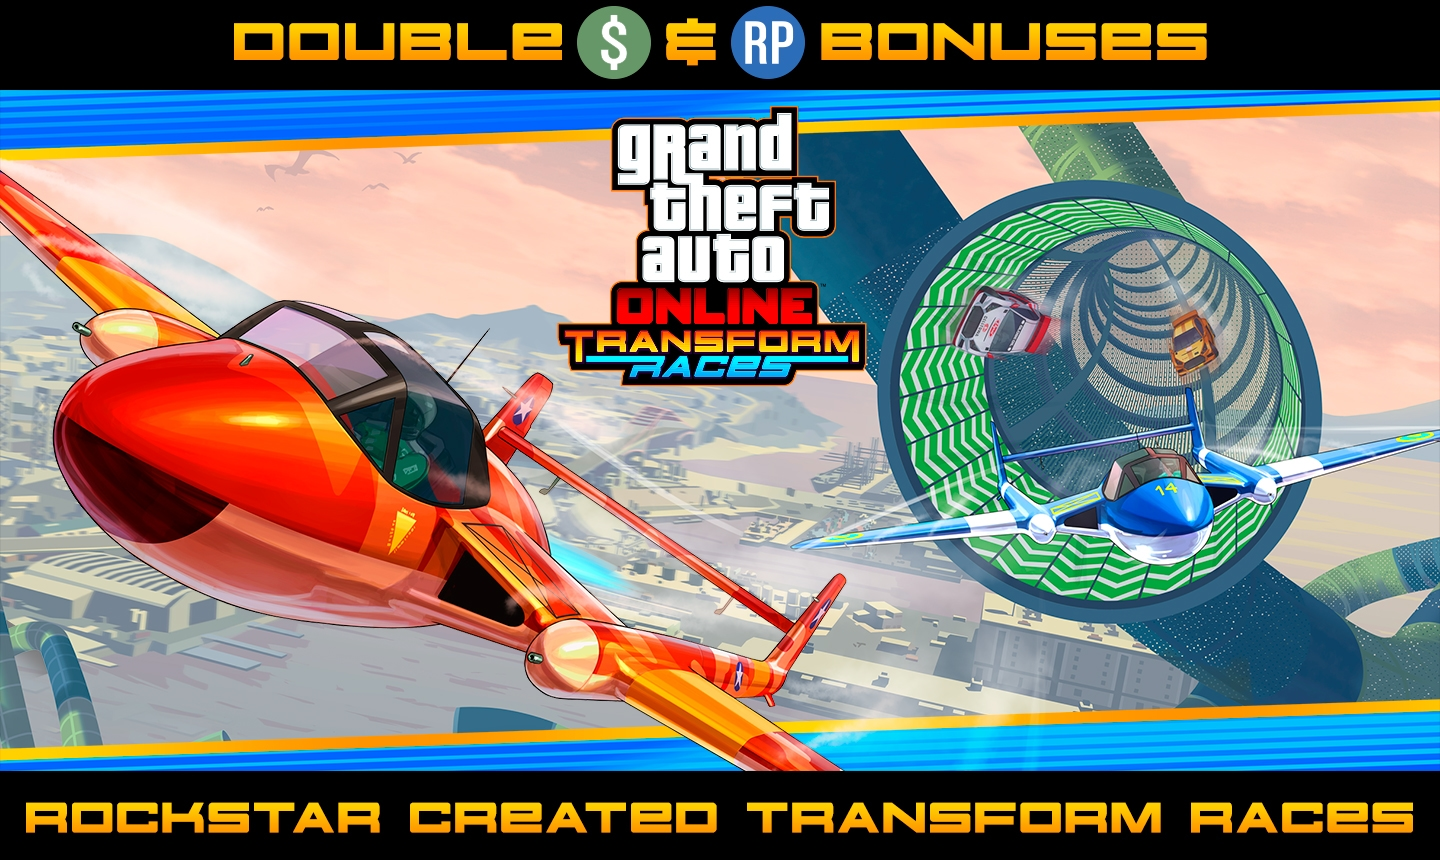 double gta rp on rockstar transform races and biker contracts plus cargo bonuses discounts on heavy duty vehicles and more